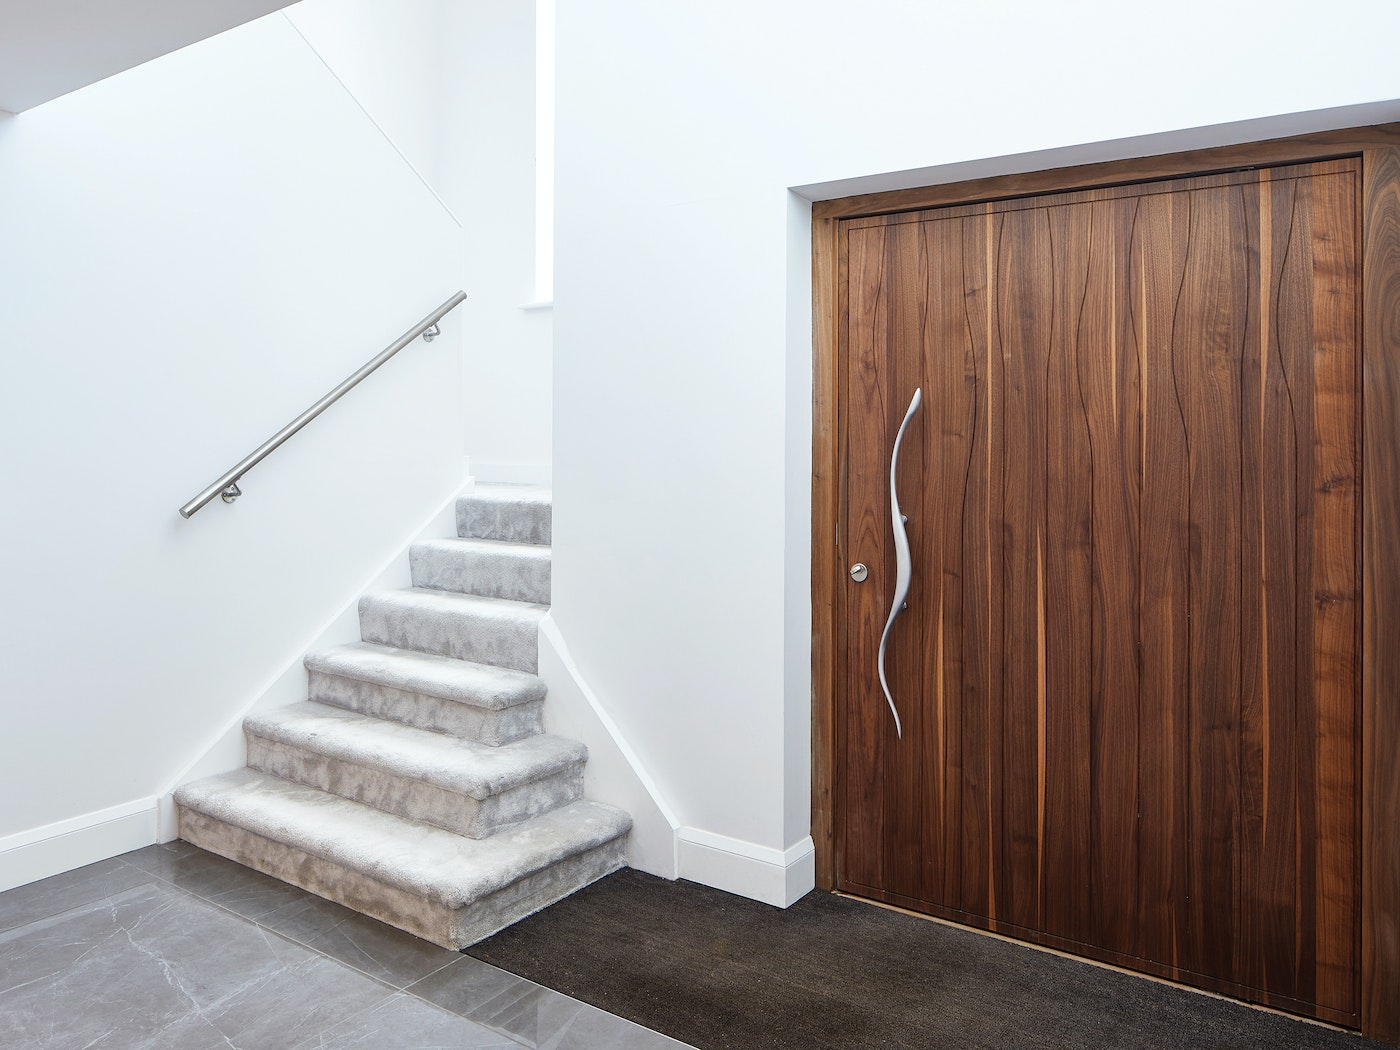 This stunning wav handle is the perfect match to the wav design on the front door